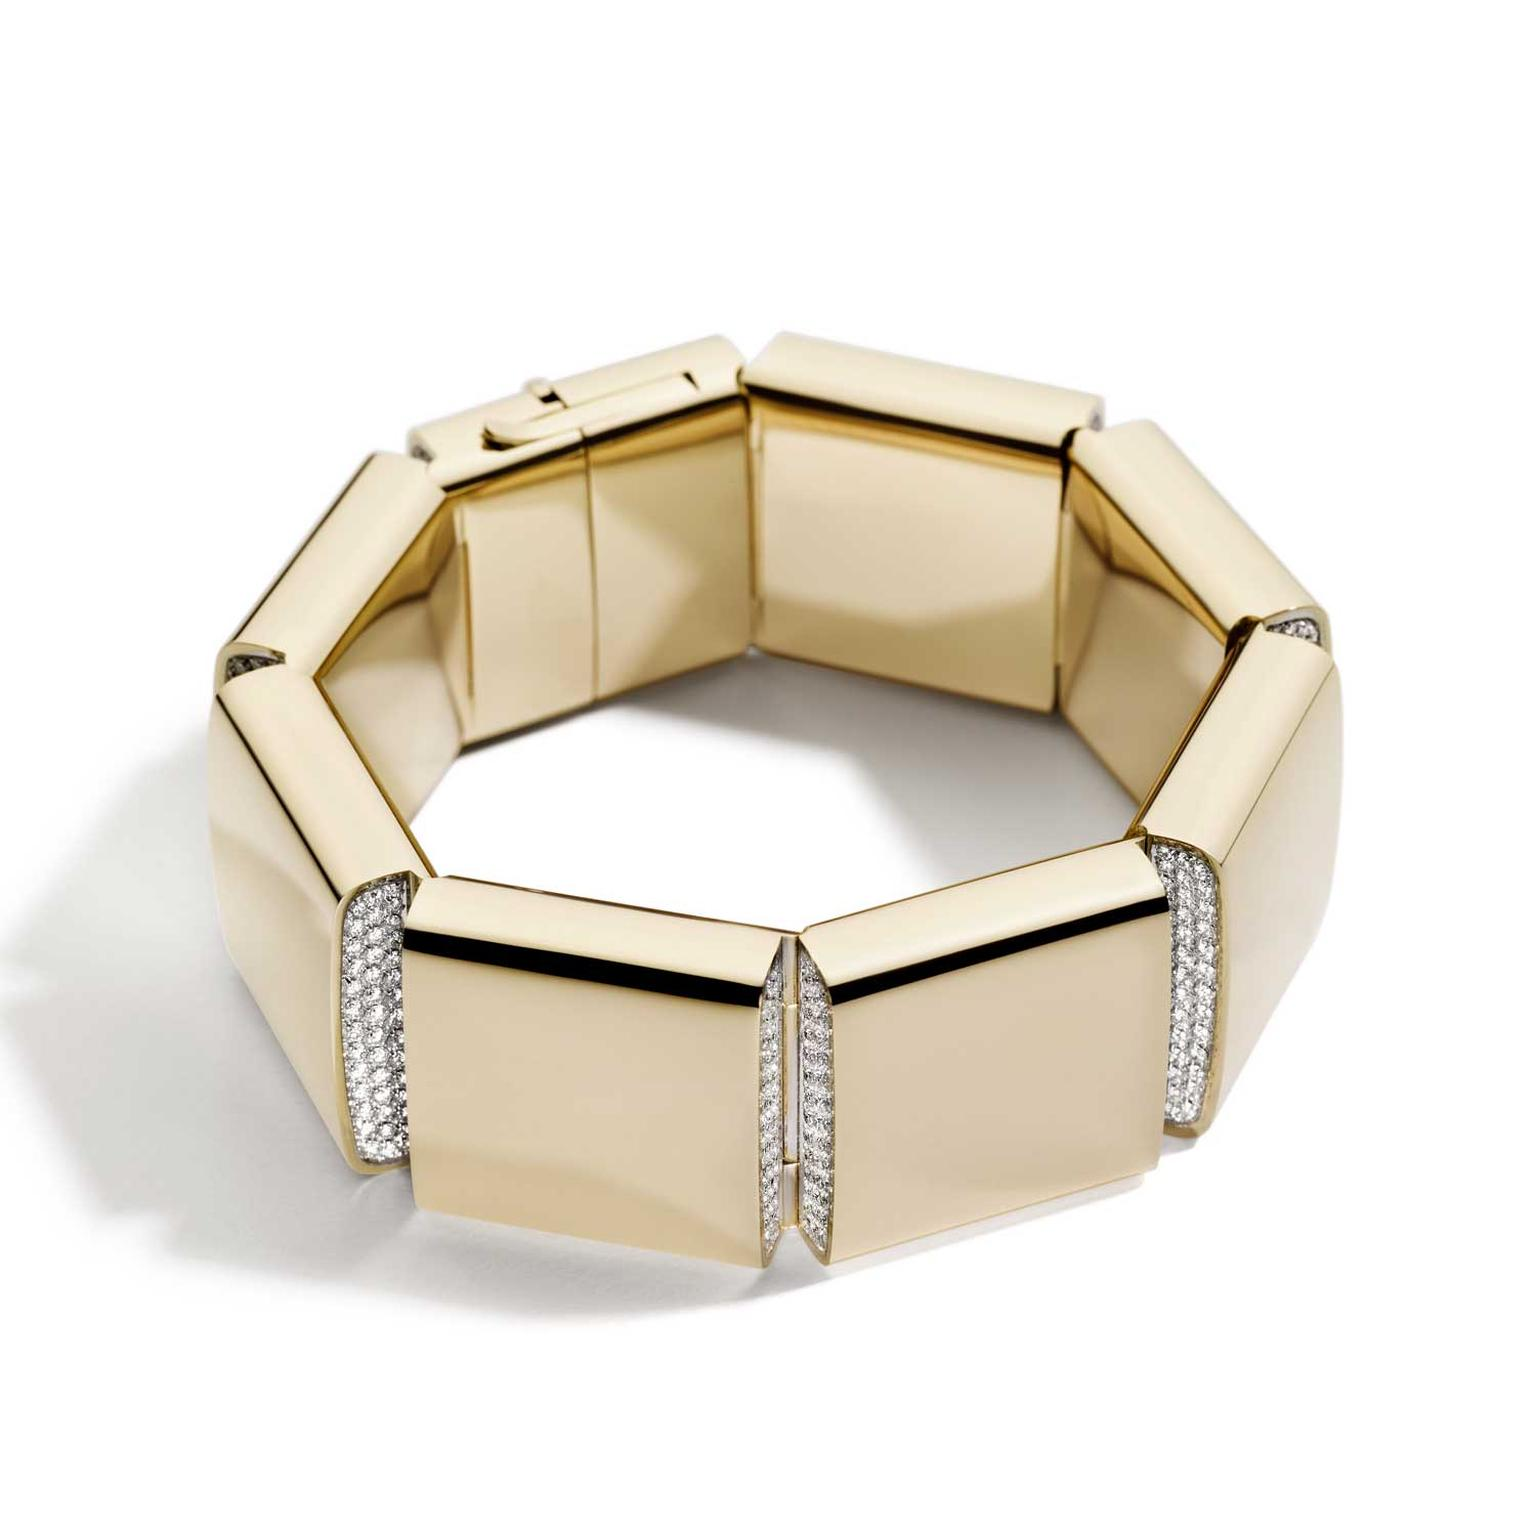 Vhernier Carré bracelet in rose gold and diamonds